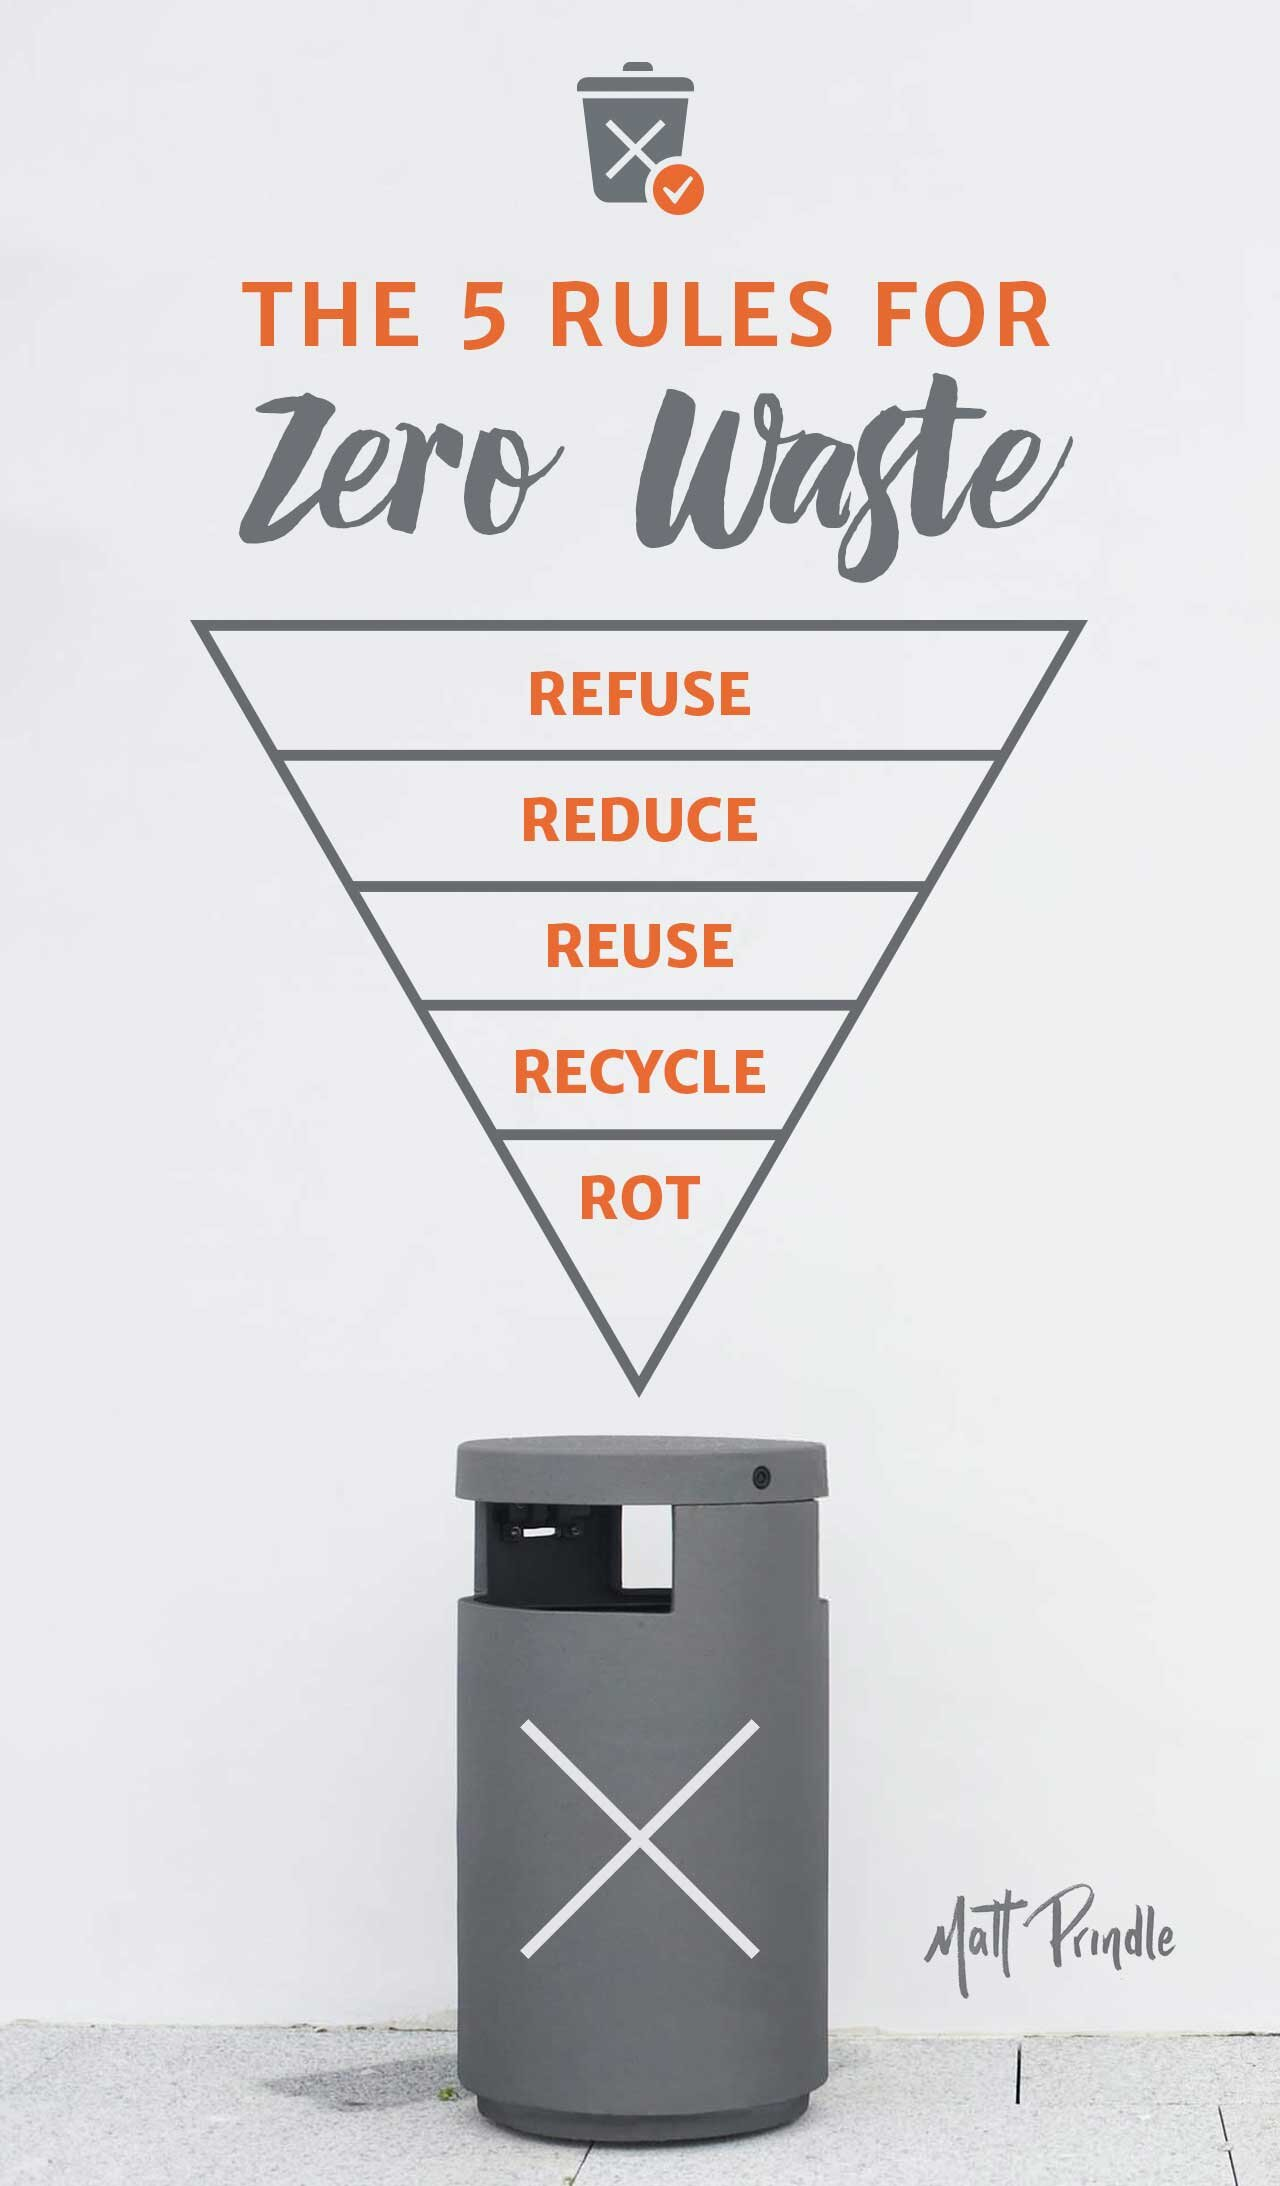 The-5-Rules-for-Zero-Waste.jpg